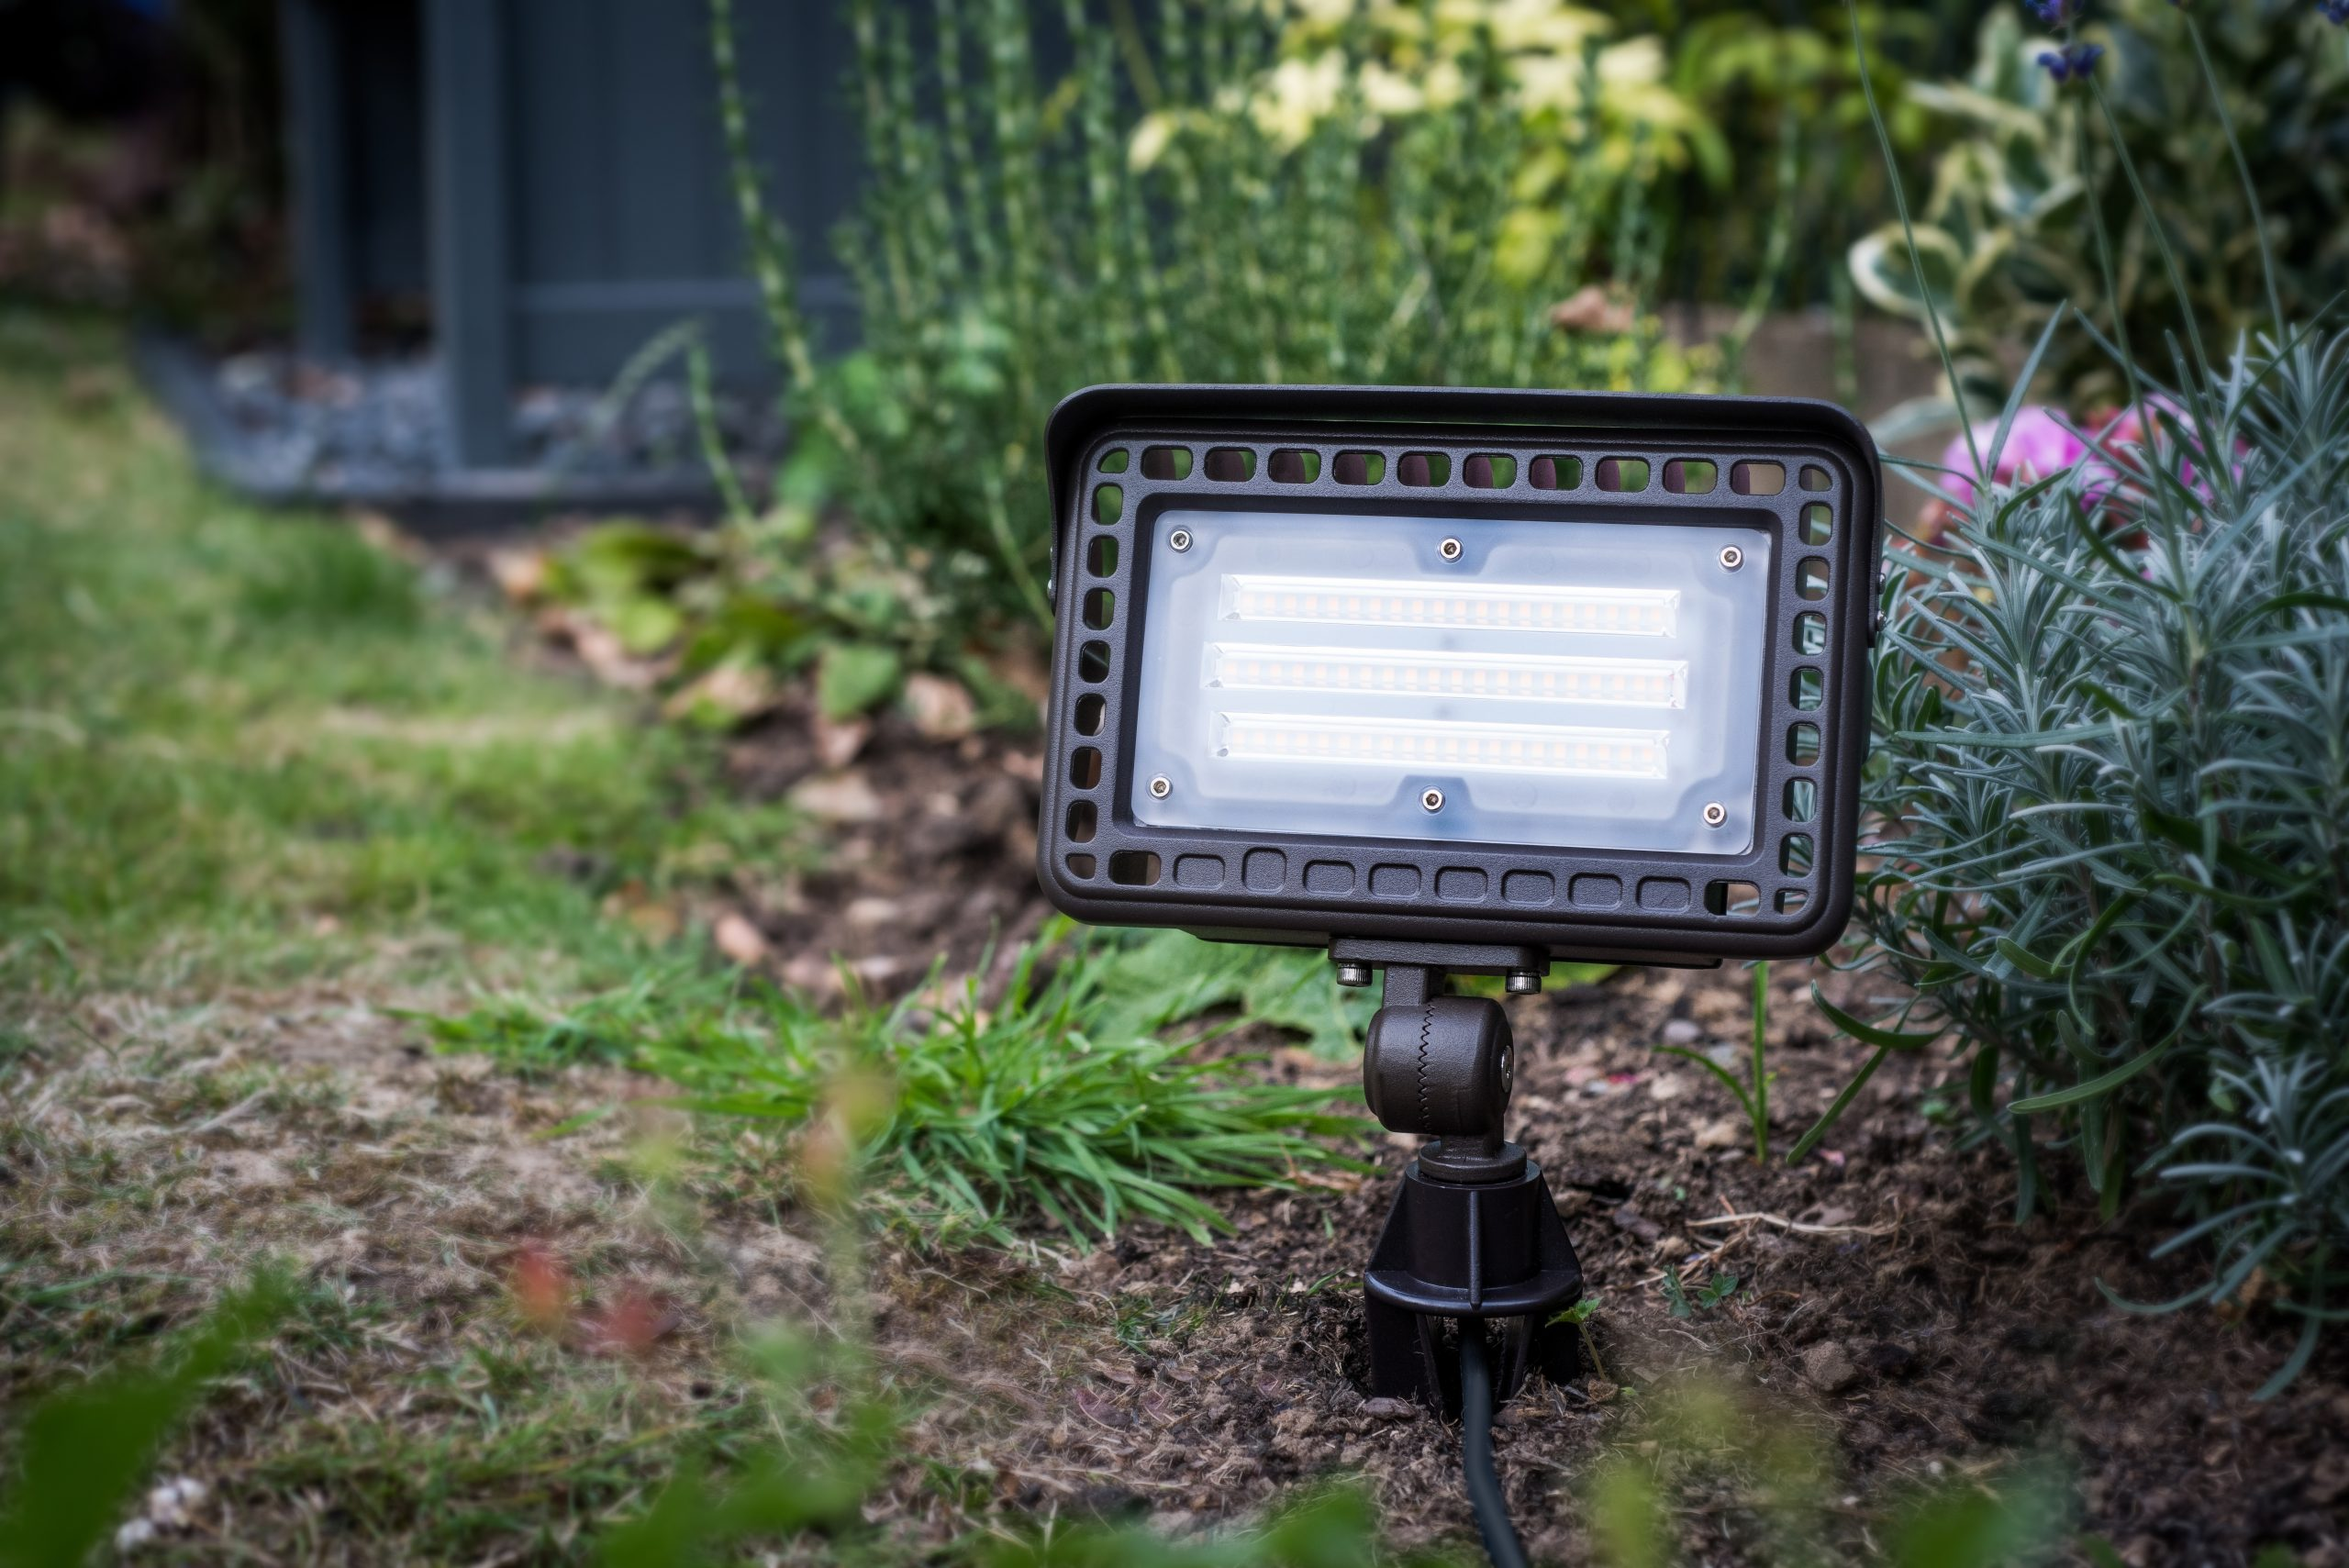 PR2 0281 retouch scaled - Low voltage garden lighting connections